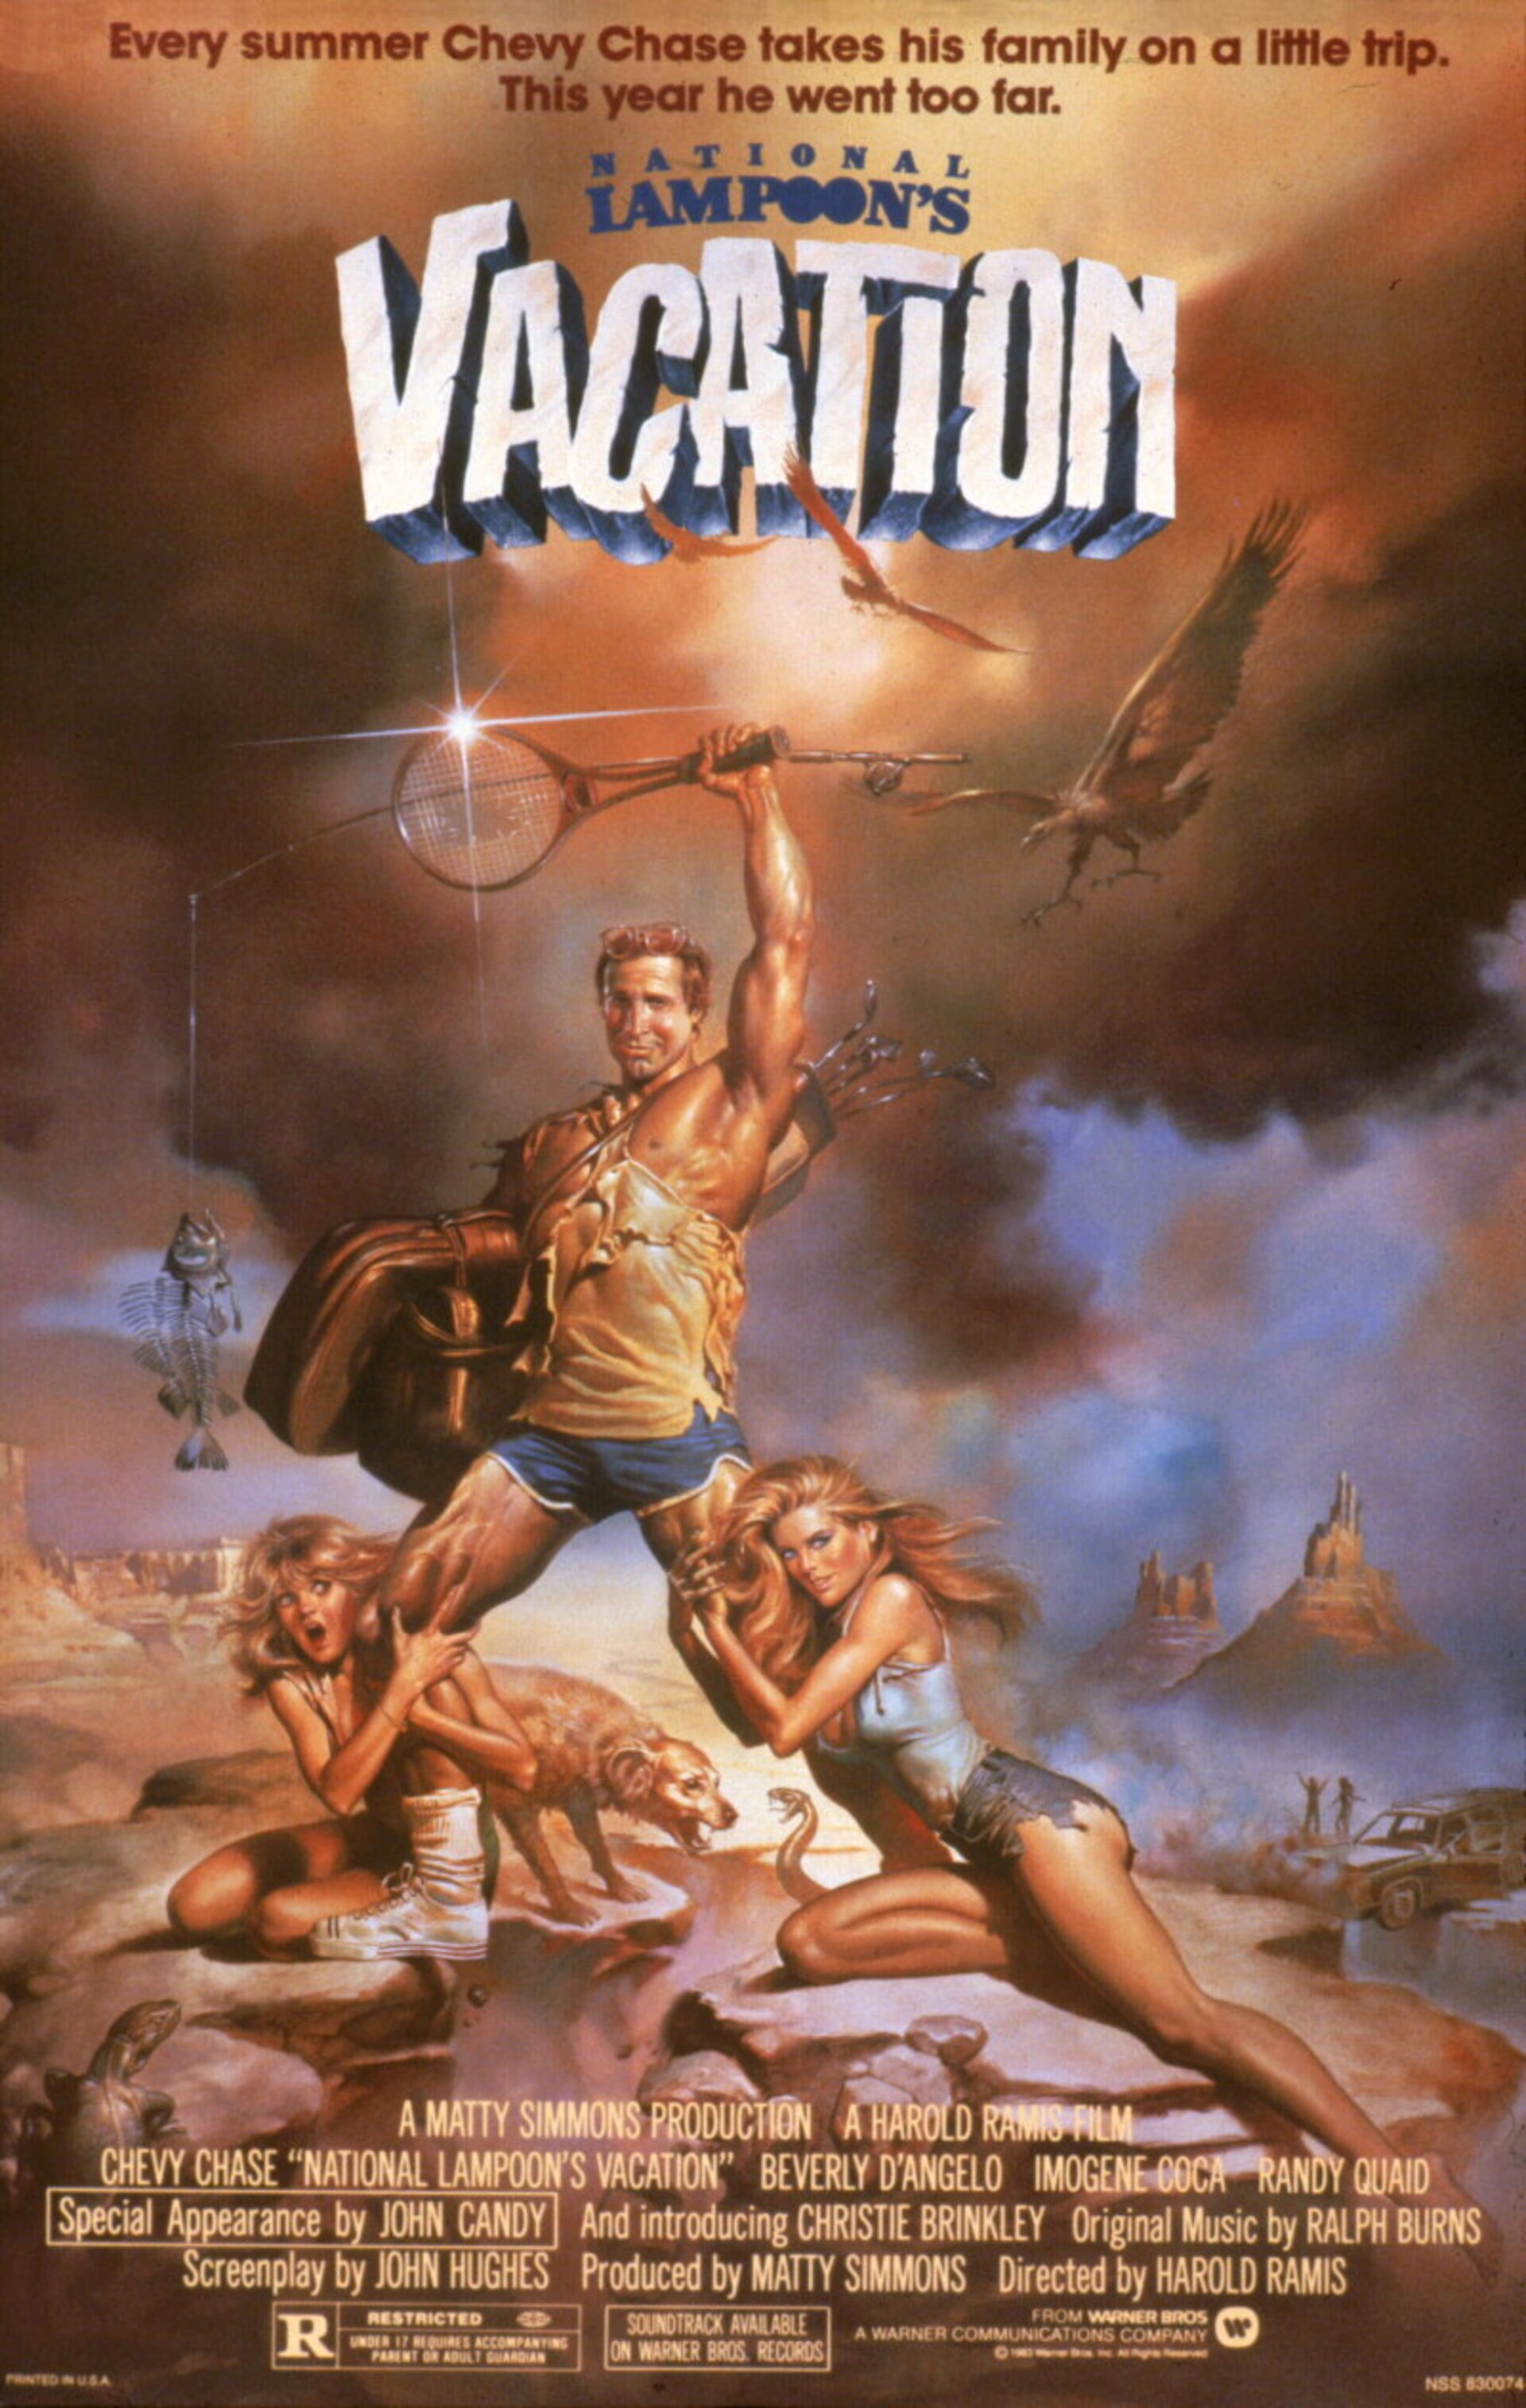 National Lampoon's Vacation - Poster 1